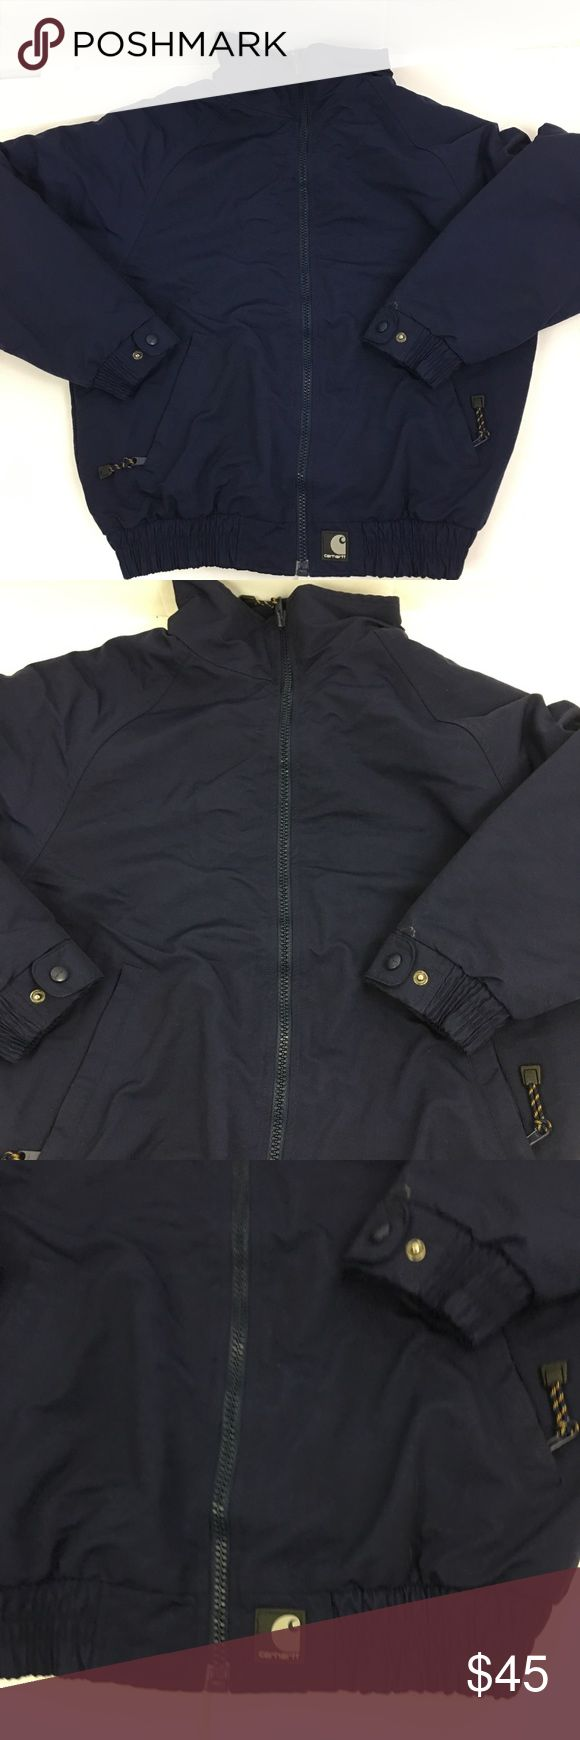 Carhartt Jacket Women's Navy Blue Medium Carhartt Jacket women's medium navy blue, zip front, front pocket with zipper closure polyester fleece lining.  This is more of a jacket not the real thick winter coat. width 22 inches underarm to underarm length 26 inches Carhartt Jackets & Coats